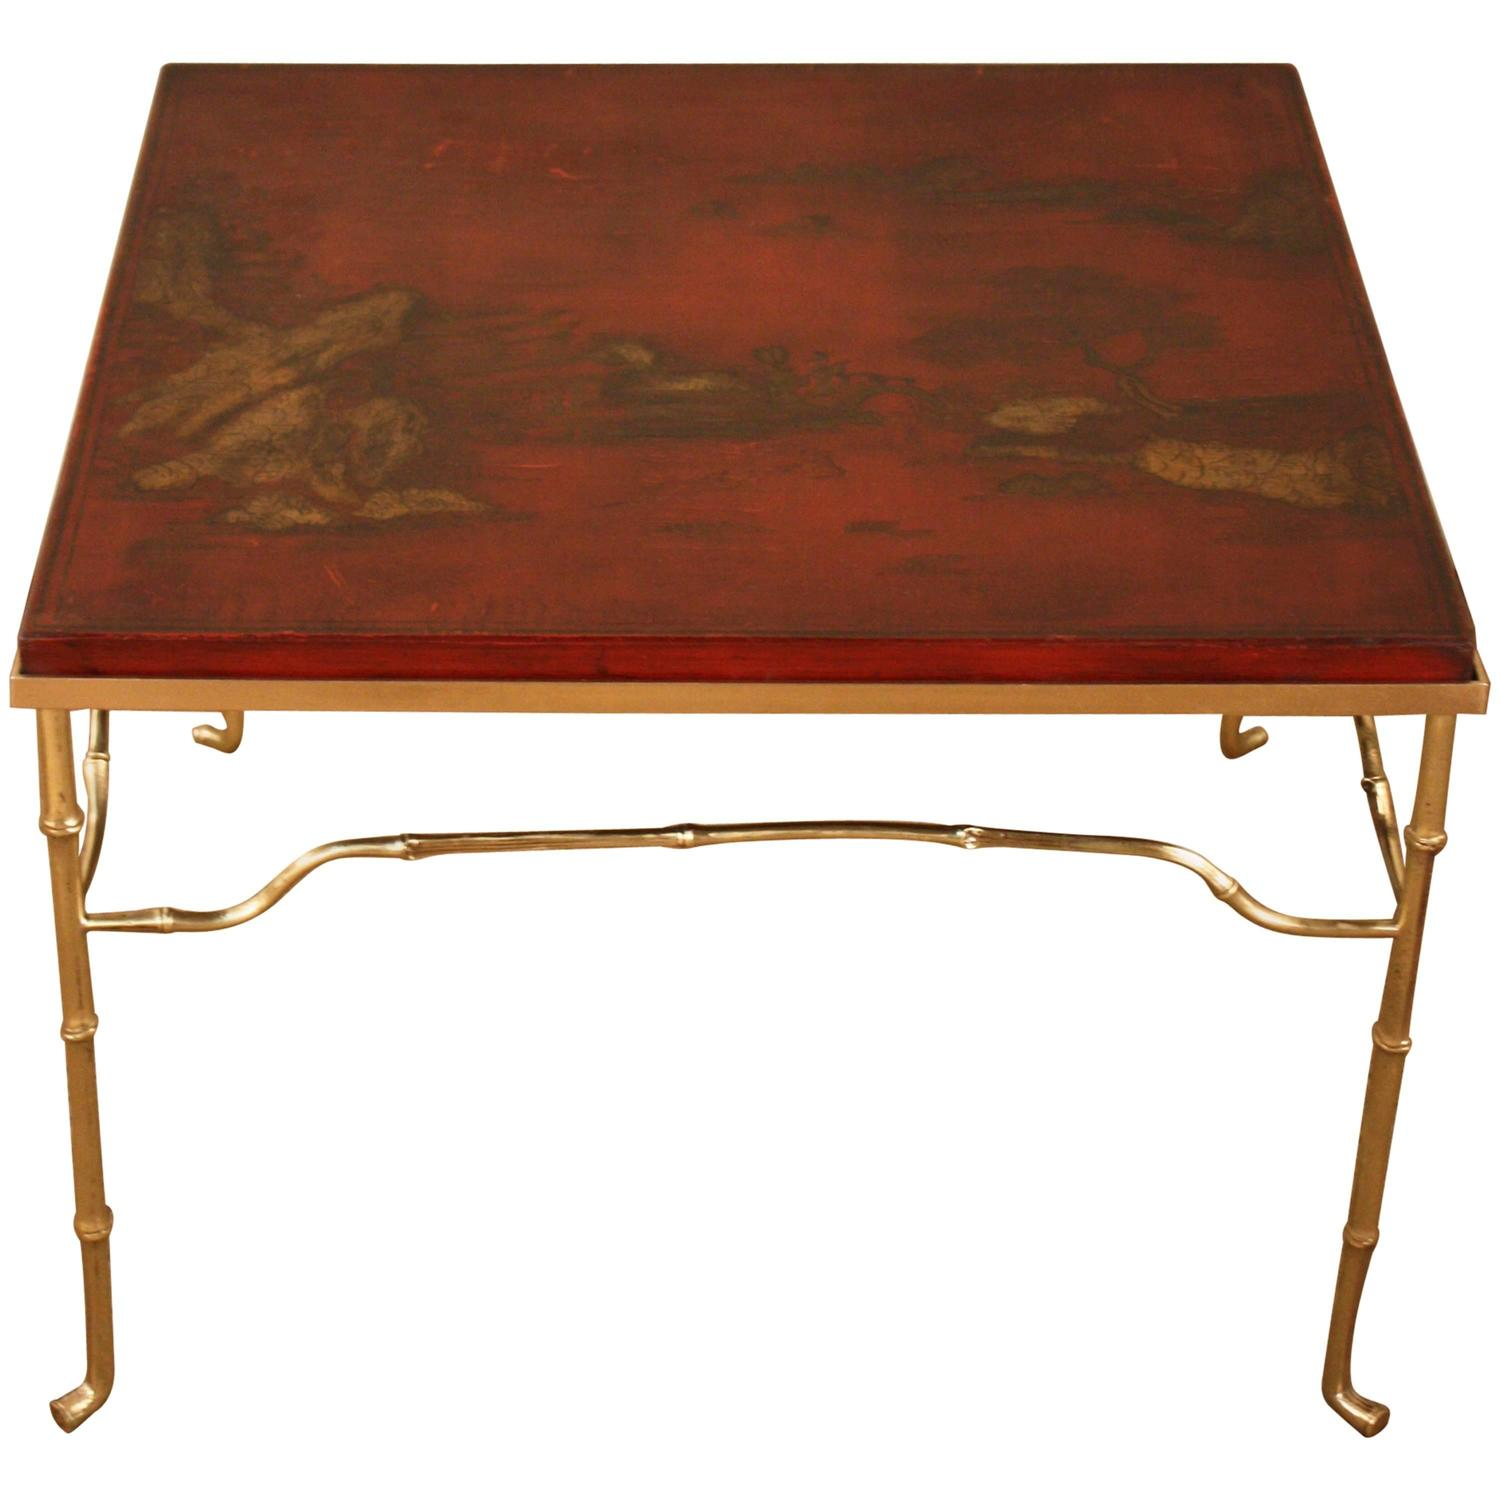 French Bronze Faux Bamboo Coffee Table With Red Lacquer Top By Bagues For Sale At 1stdibs